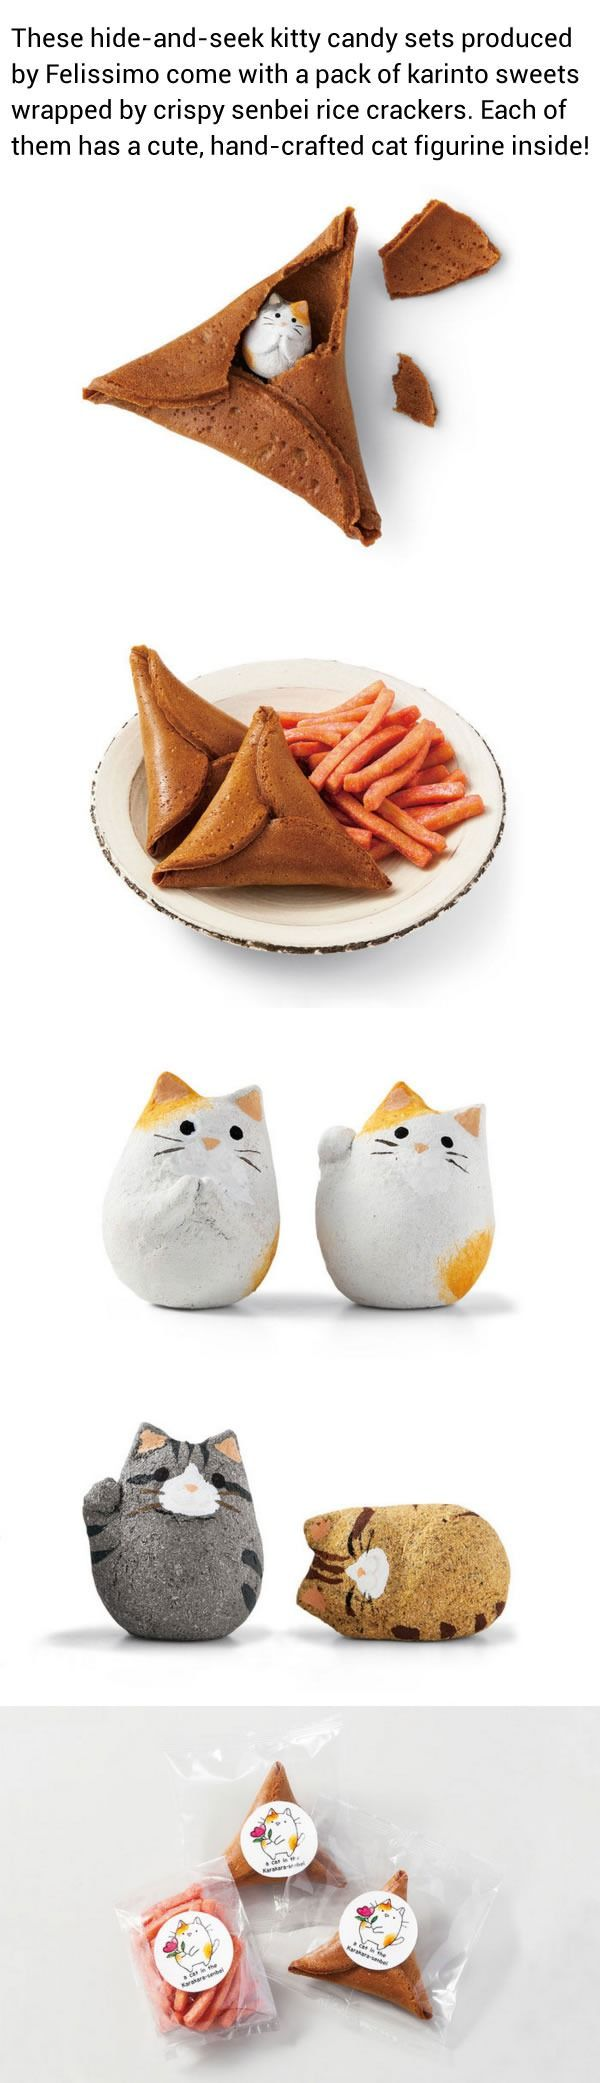 Japan Creates A Purrfect Alternative To Fortune Cookies – Fortune Cat Rice Crackers - 9GAG